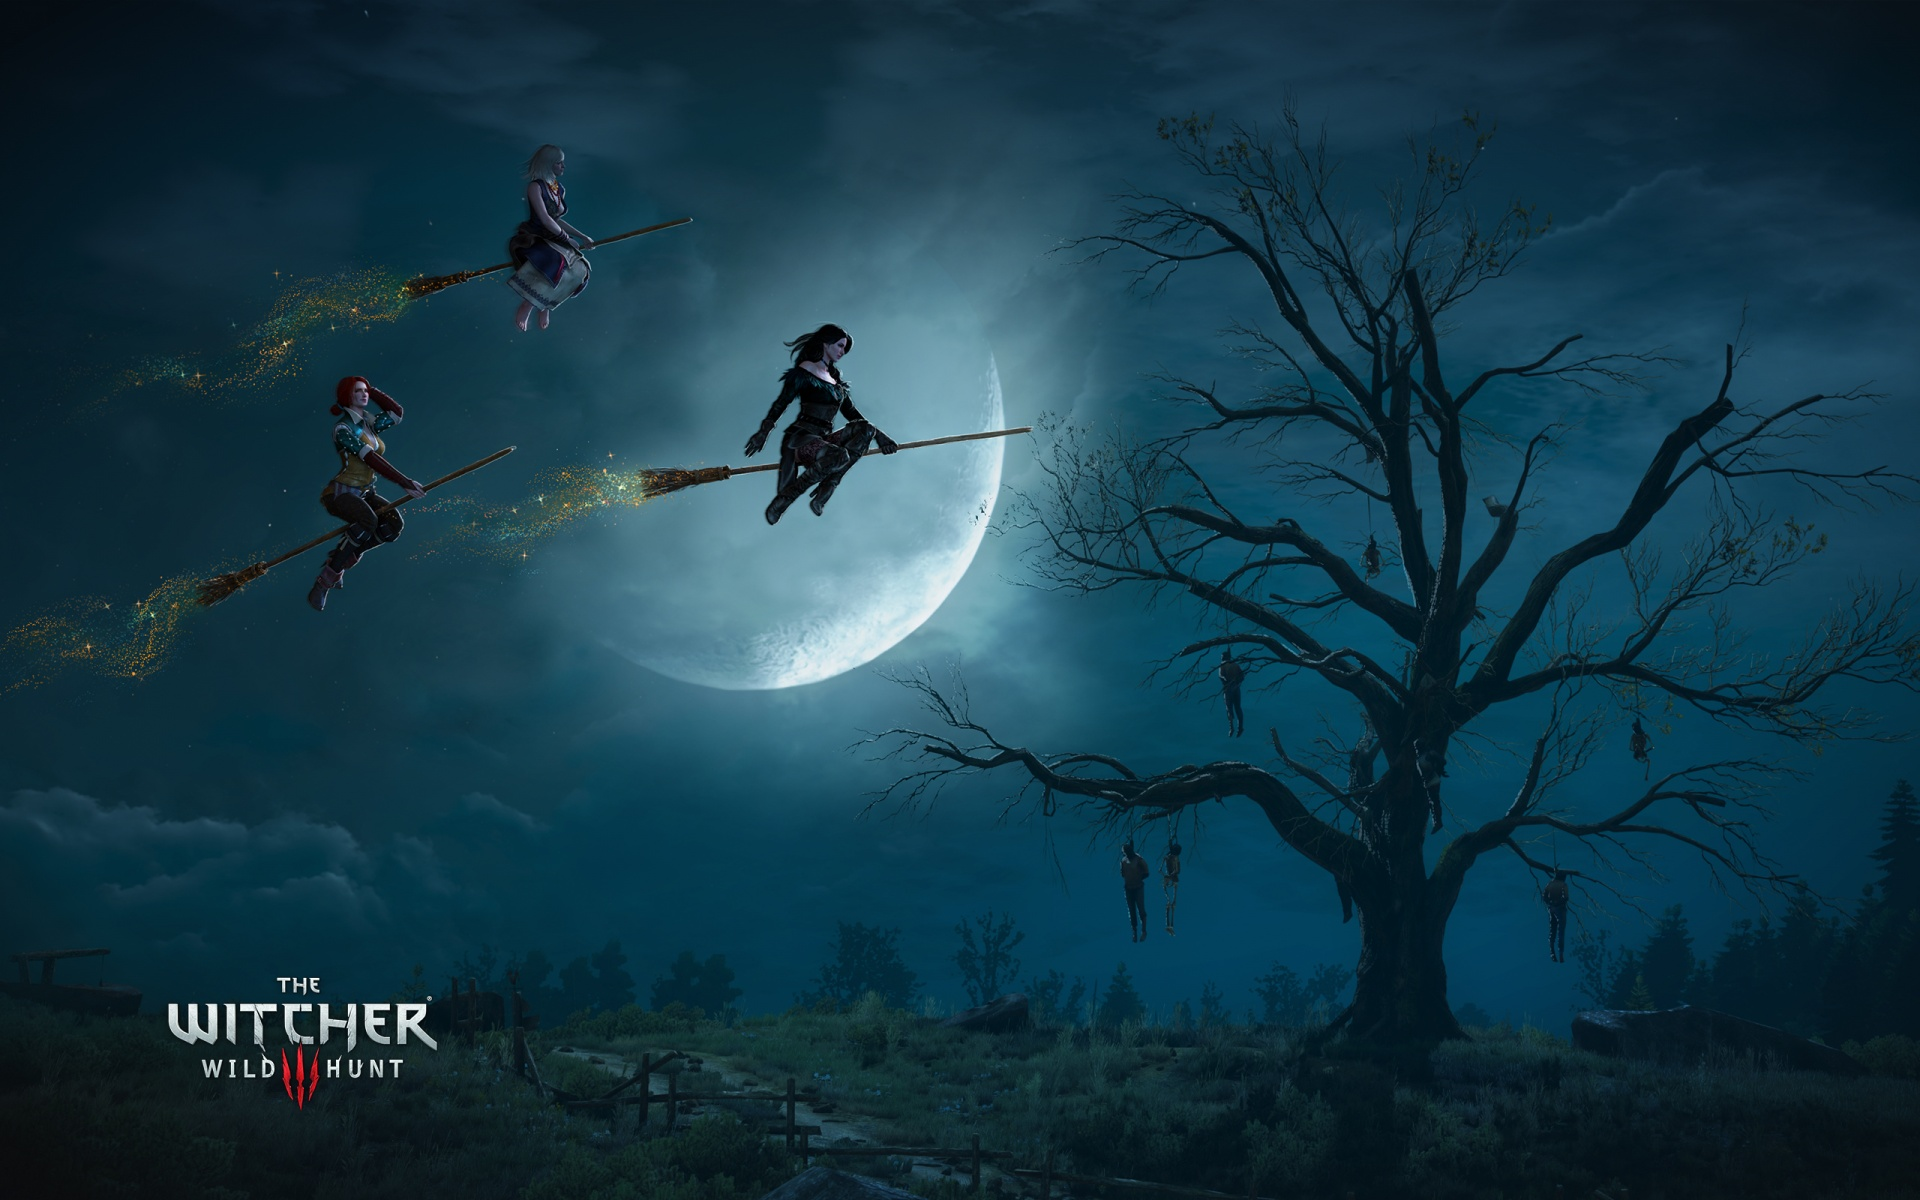 3d World Wallpaper World The Witcher 3 Wild Hunt Witches Wallpapers In Jpg Format